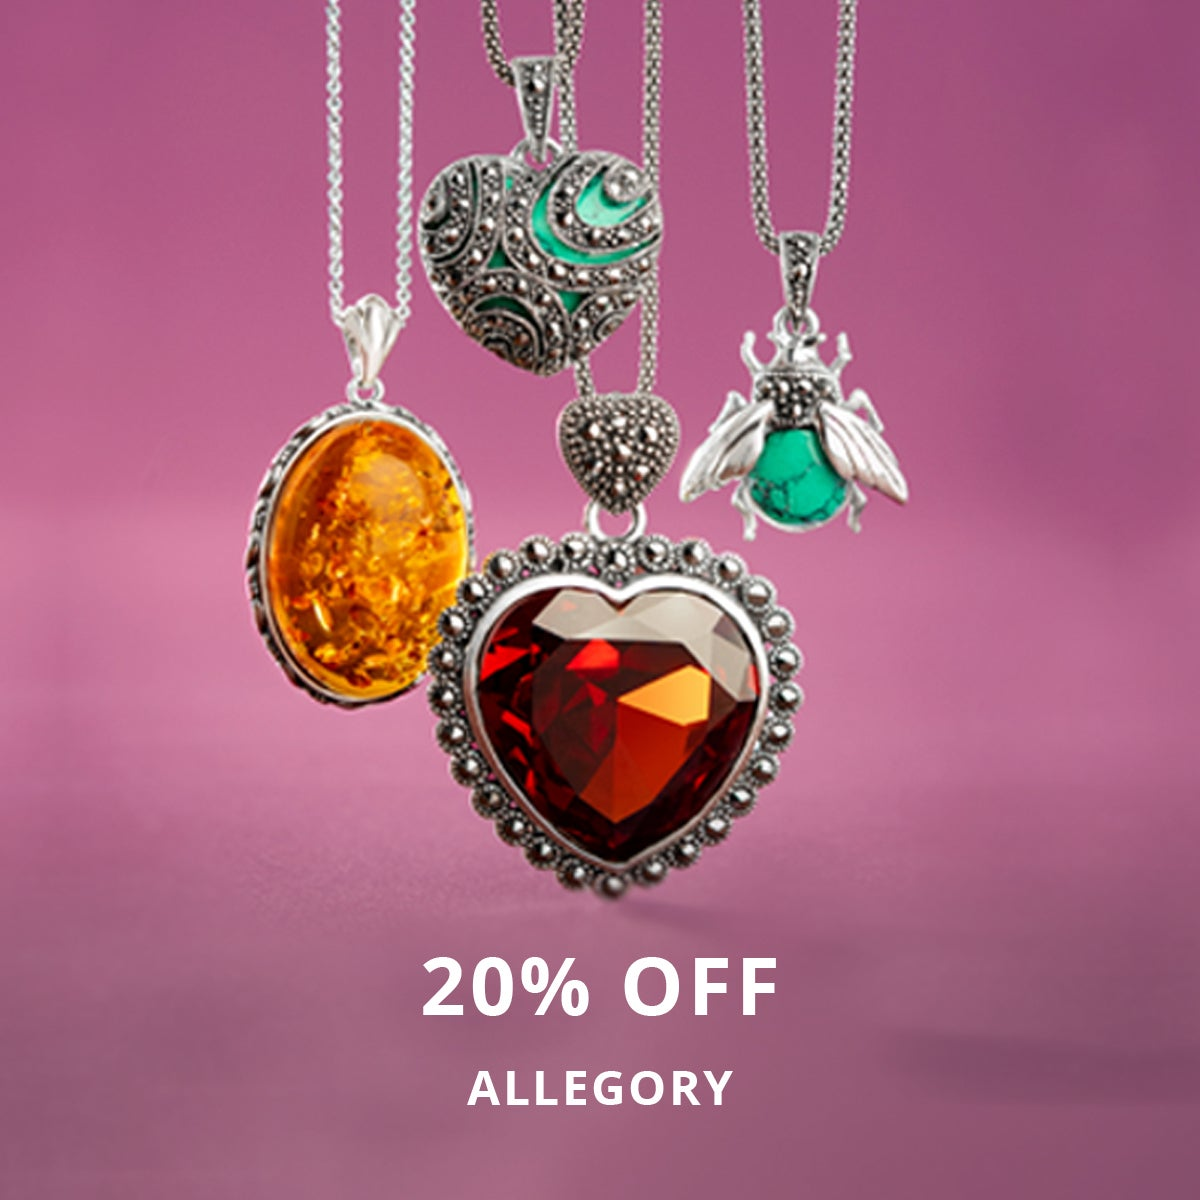 20% Off ALLEGORY